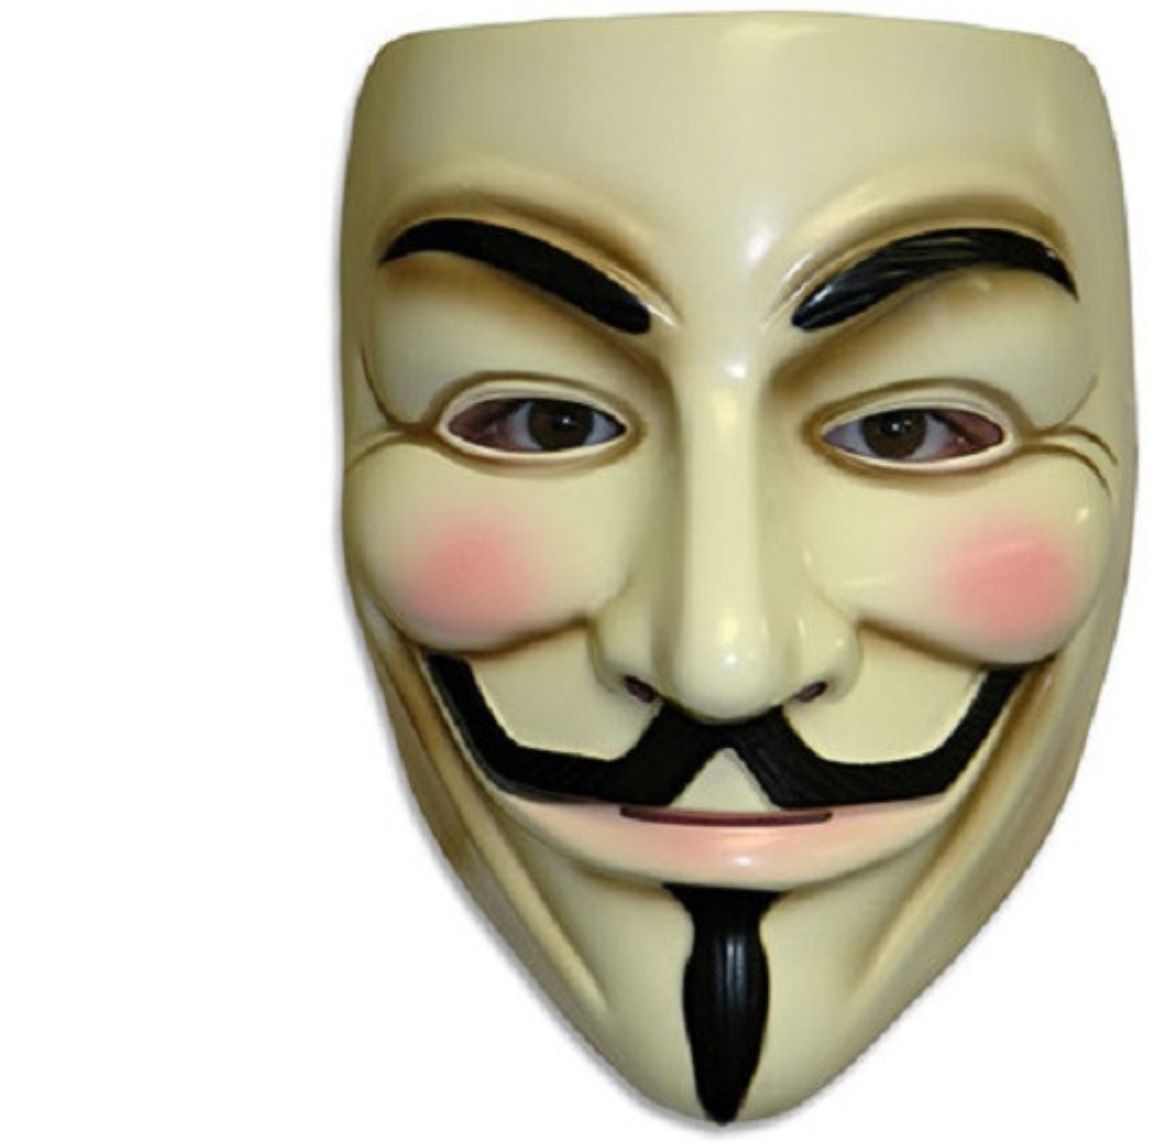 V For Vendetta - Mask - Adult - Guy Fawkes - Anonymous - Costume Accessory